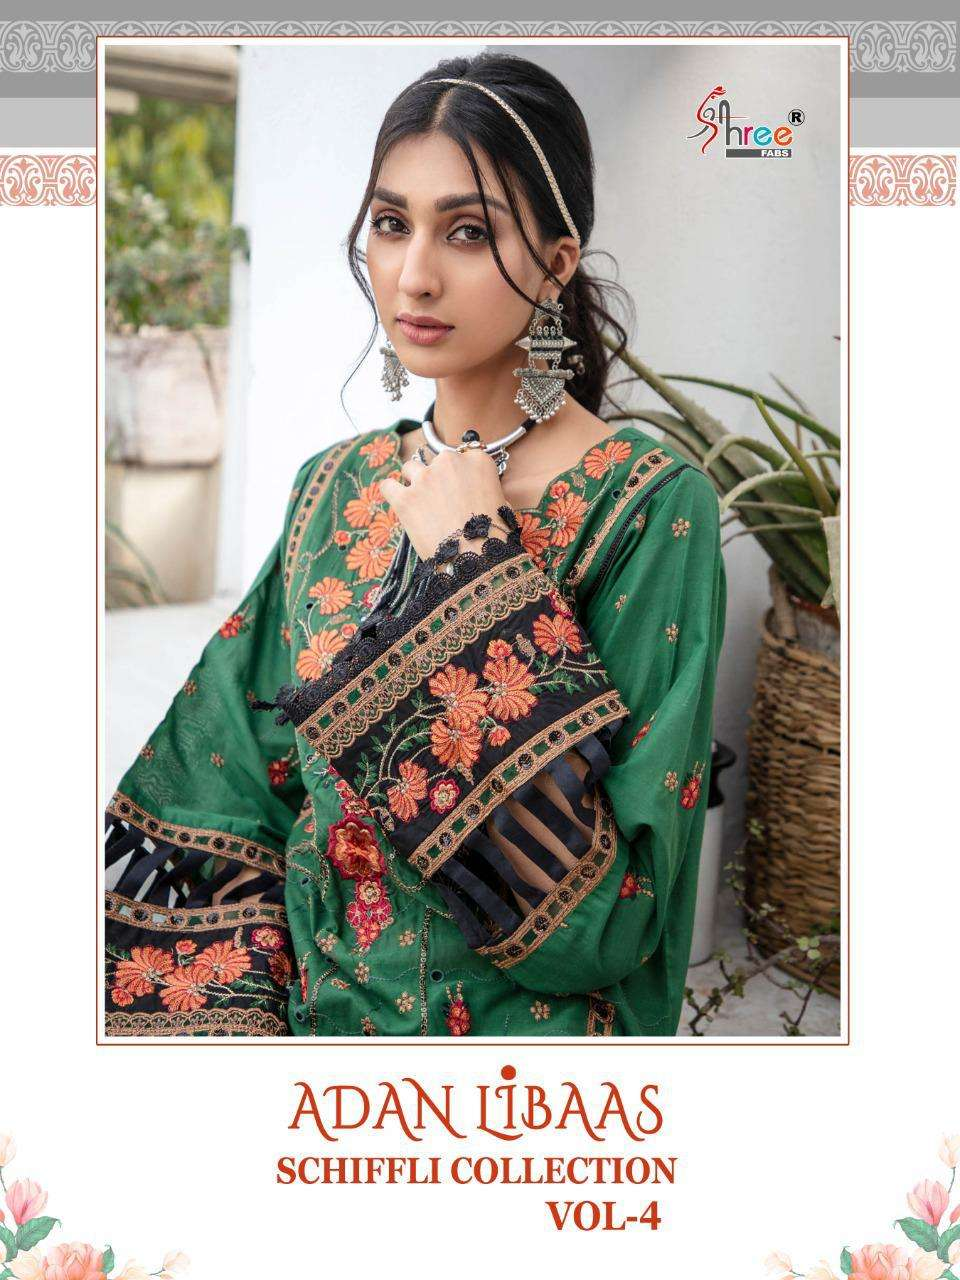 Shree Fabs Adan Libaas Schiffli Collection vol 4 Pure Cotton With Embroidery Work Pakistani Suits Collection